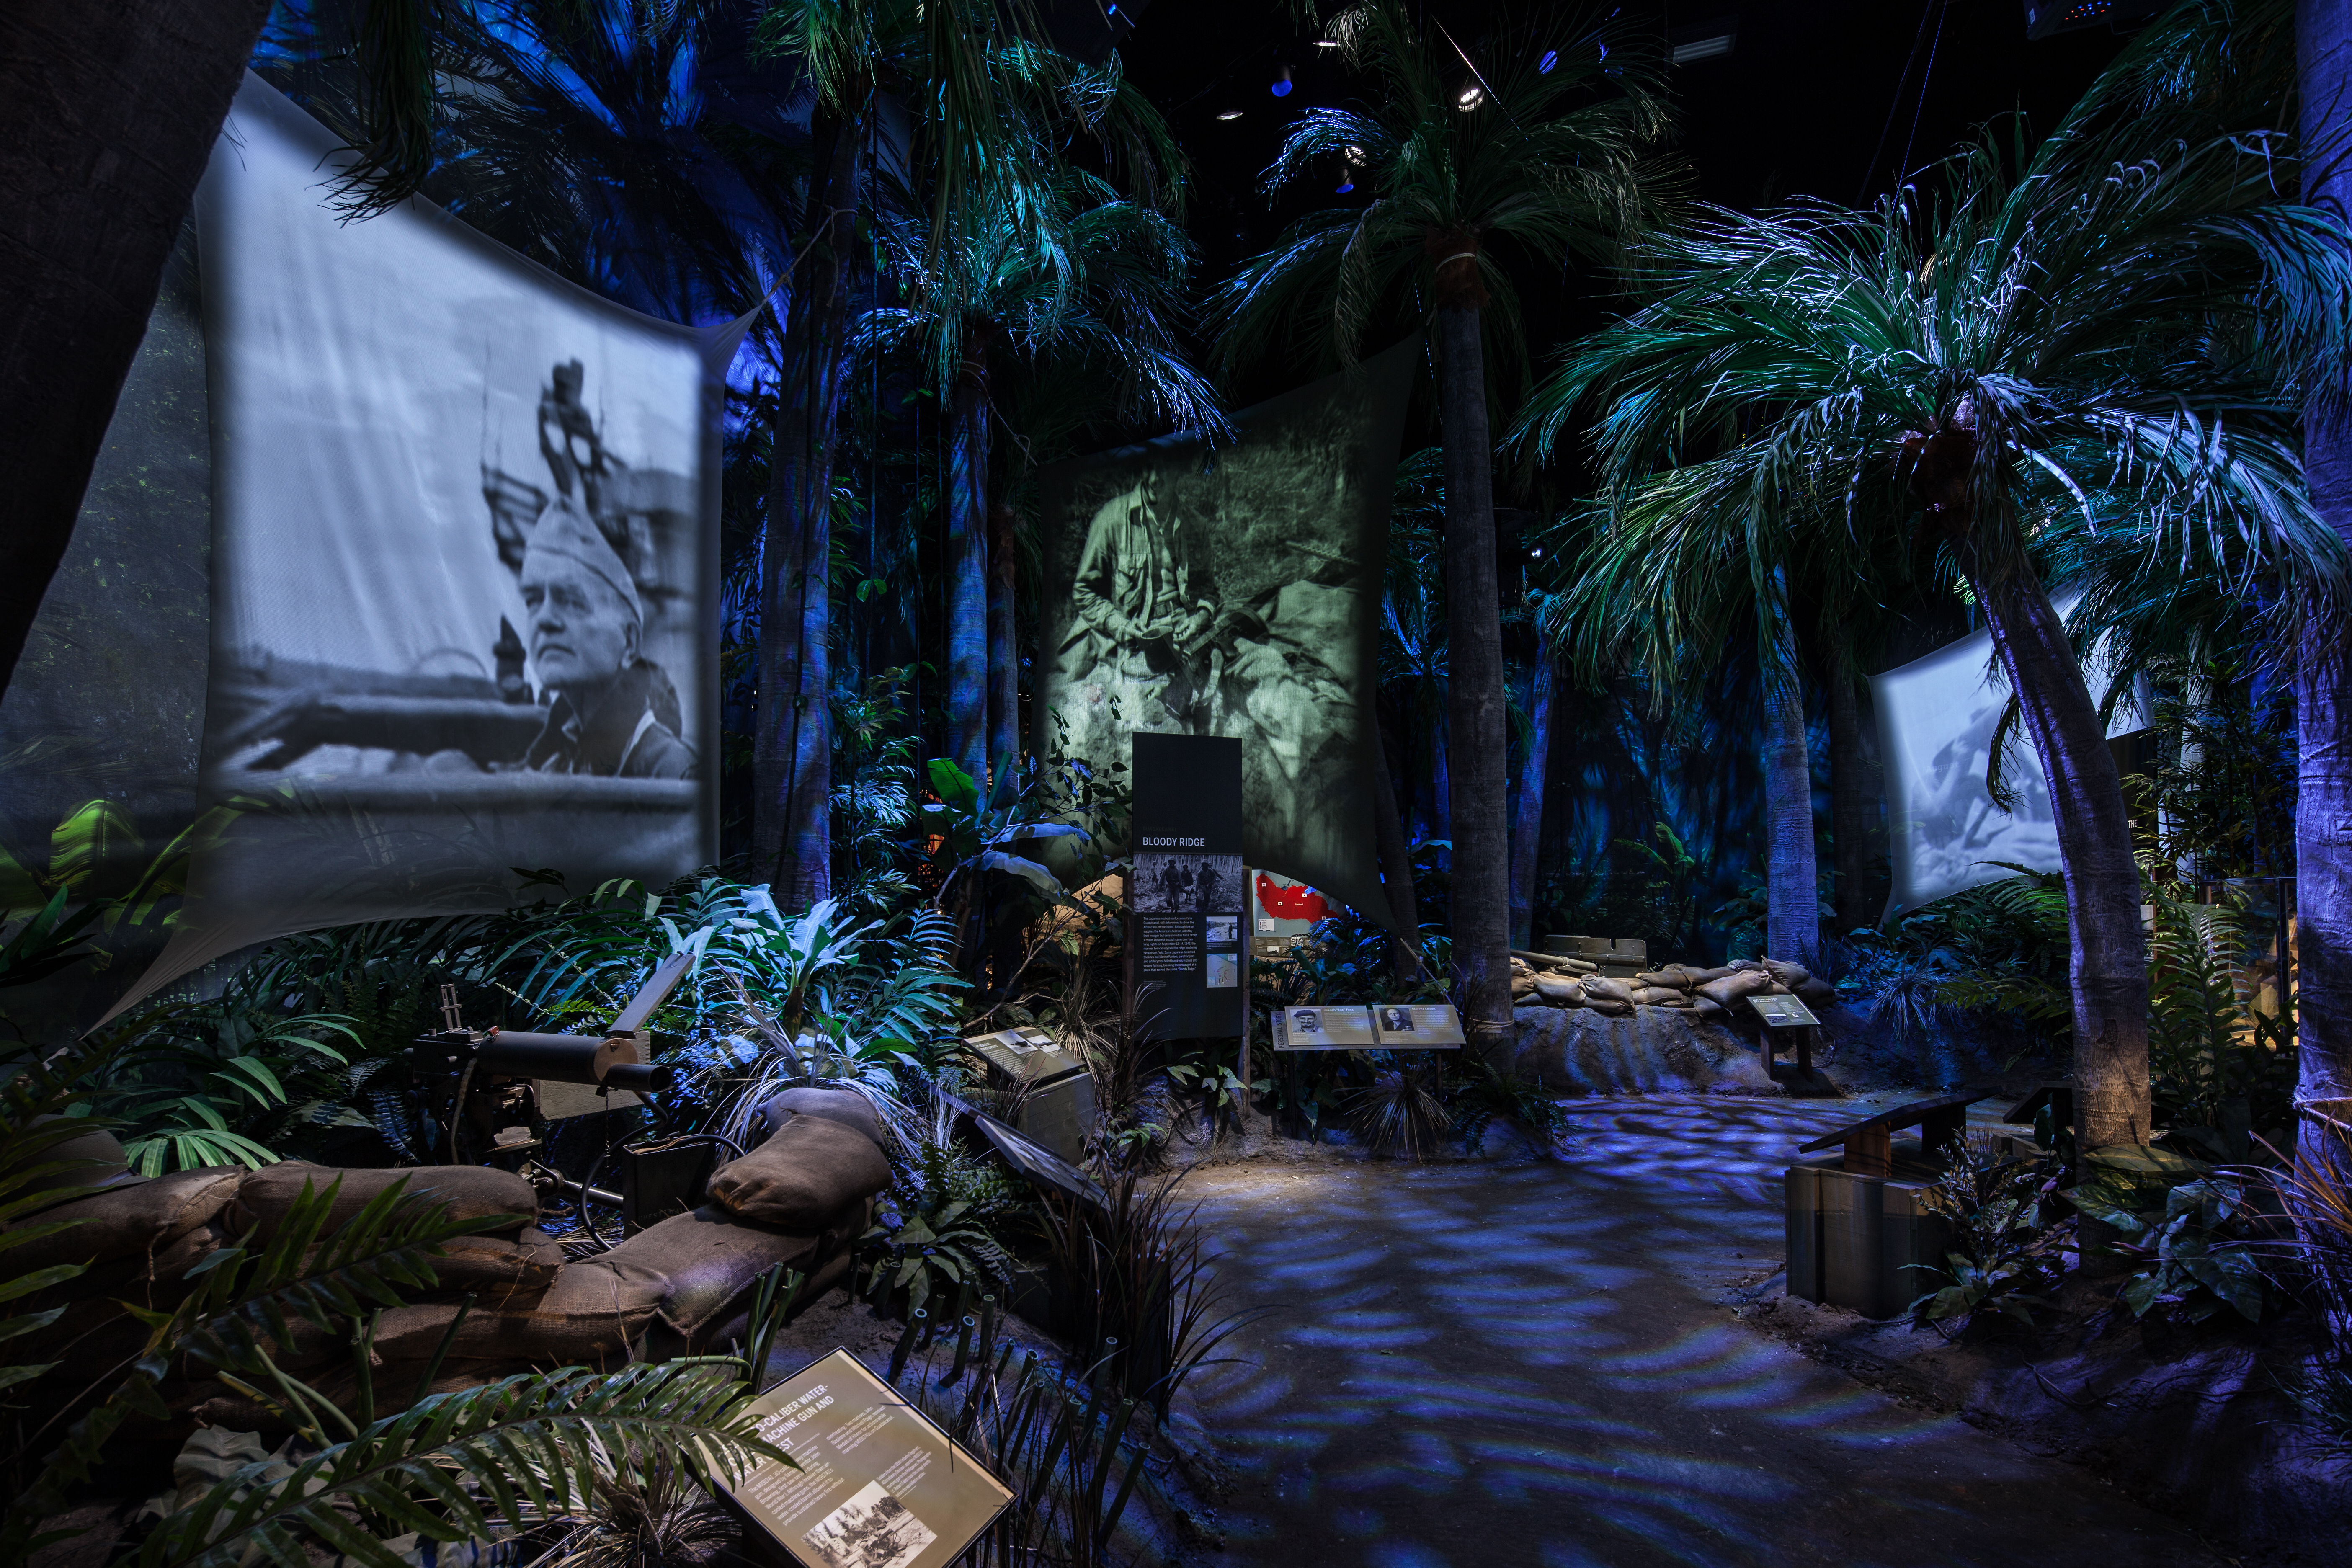 Guadalcanal: Green Hell Gallery in Road to Tokyo